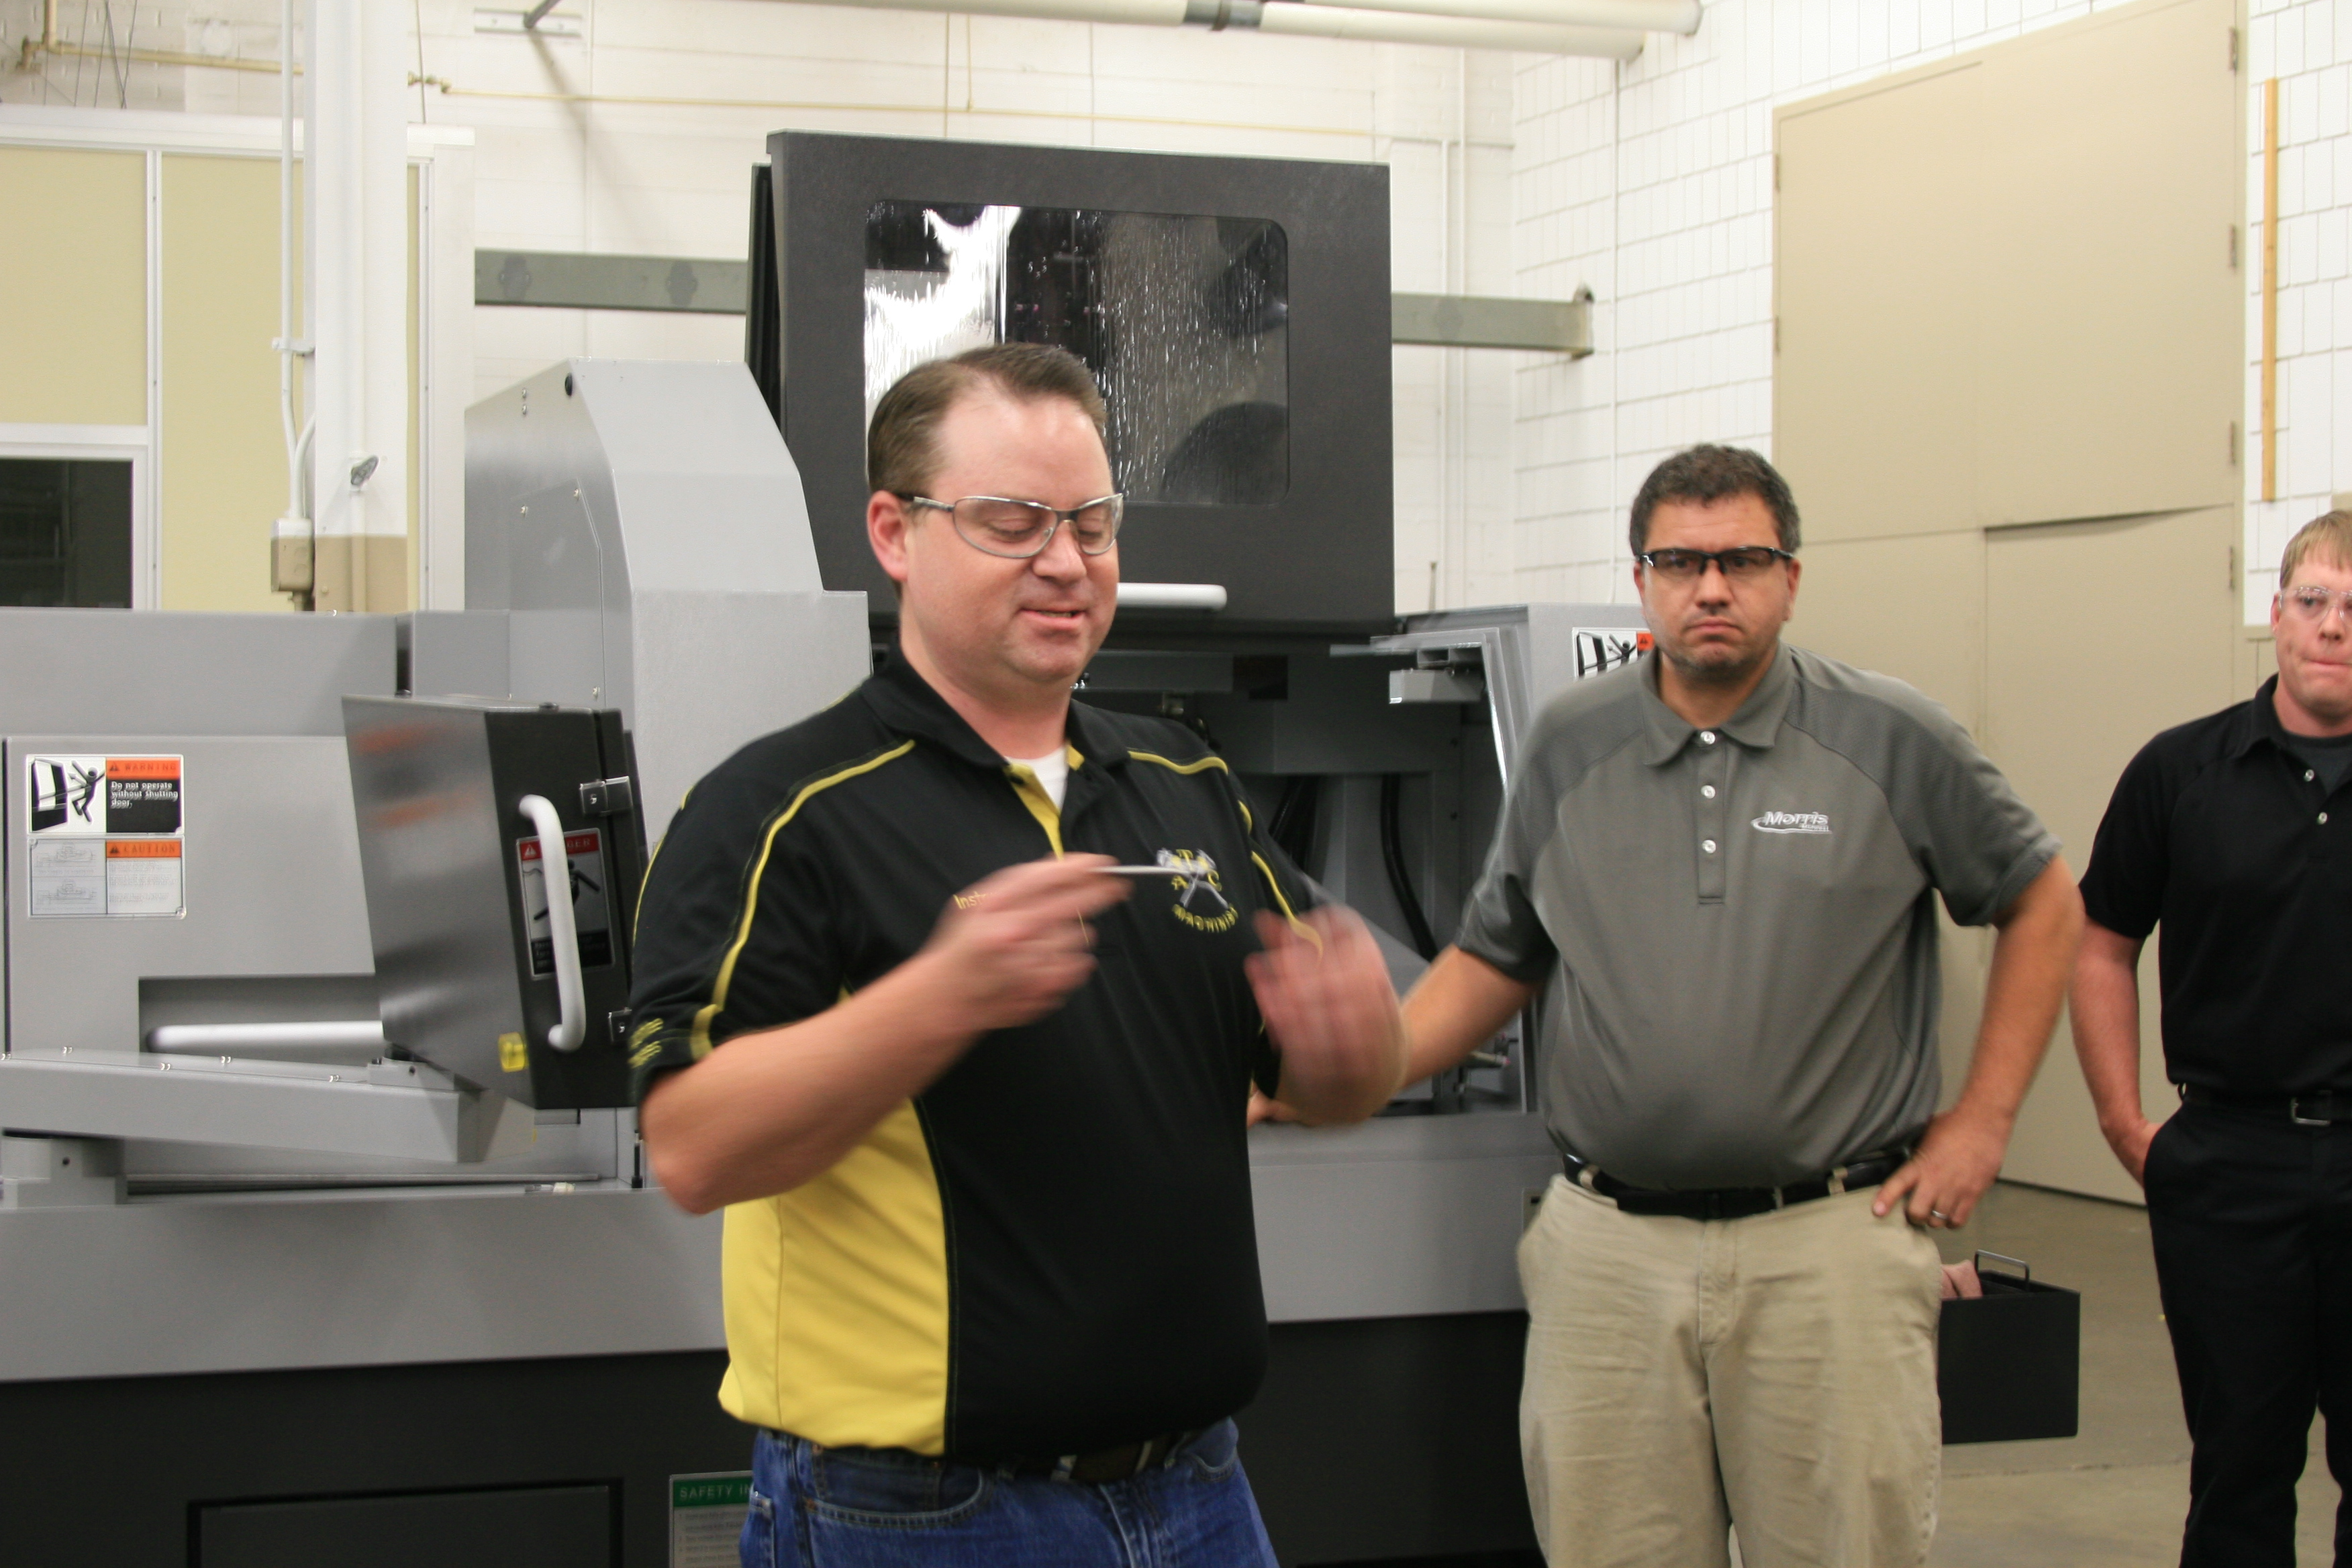 Anoka Technical College thanks donors for multi-axis Swiss